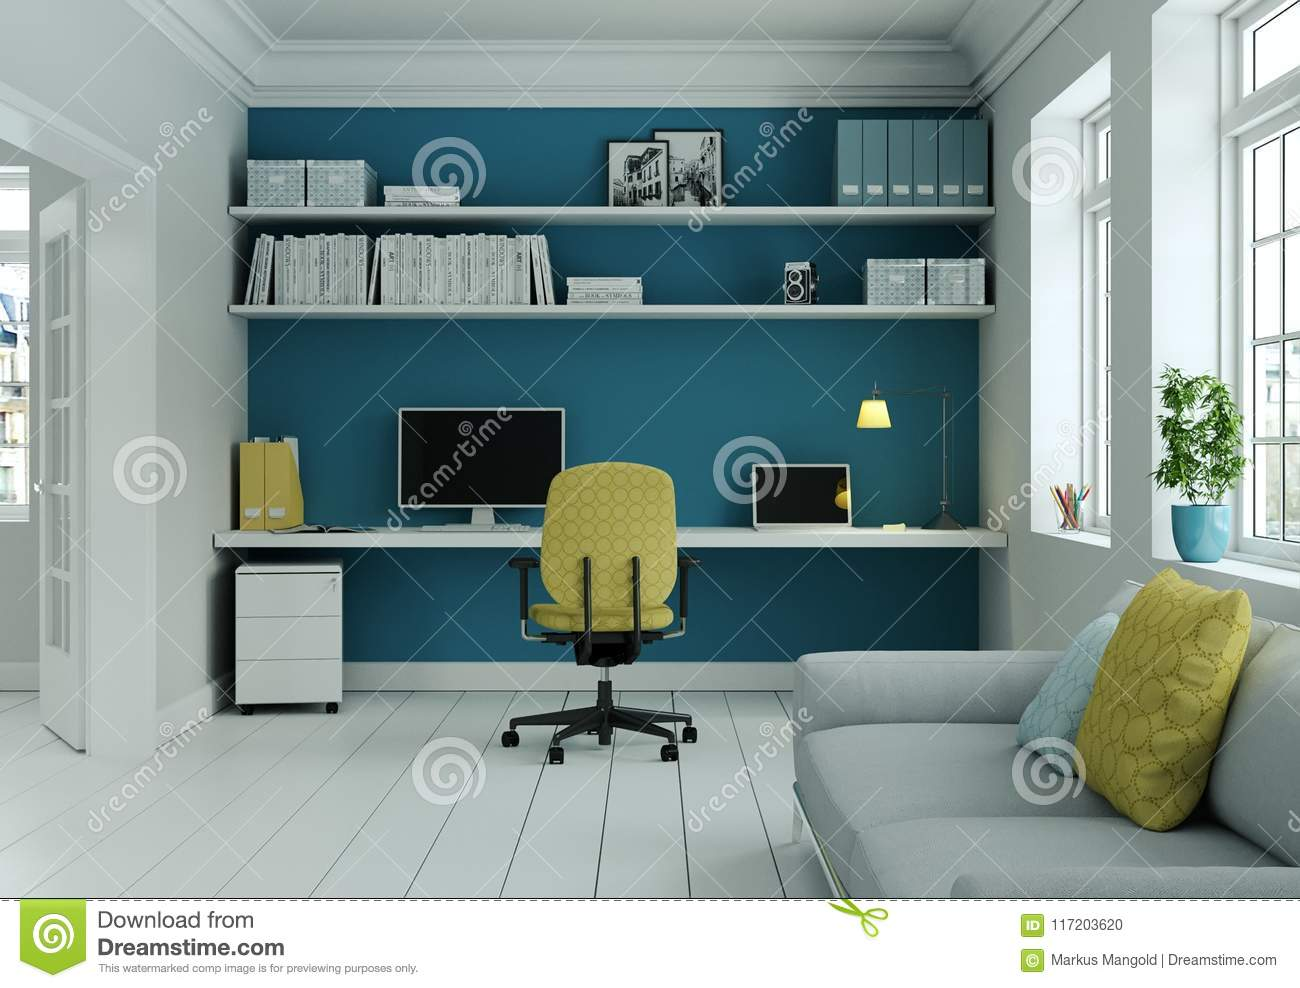 Modern Home Office With Yellow Chair And Blue Wall Interior Design